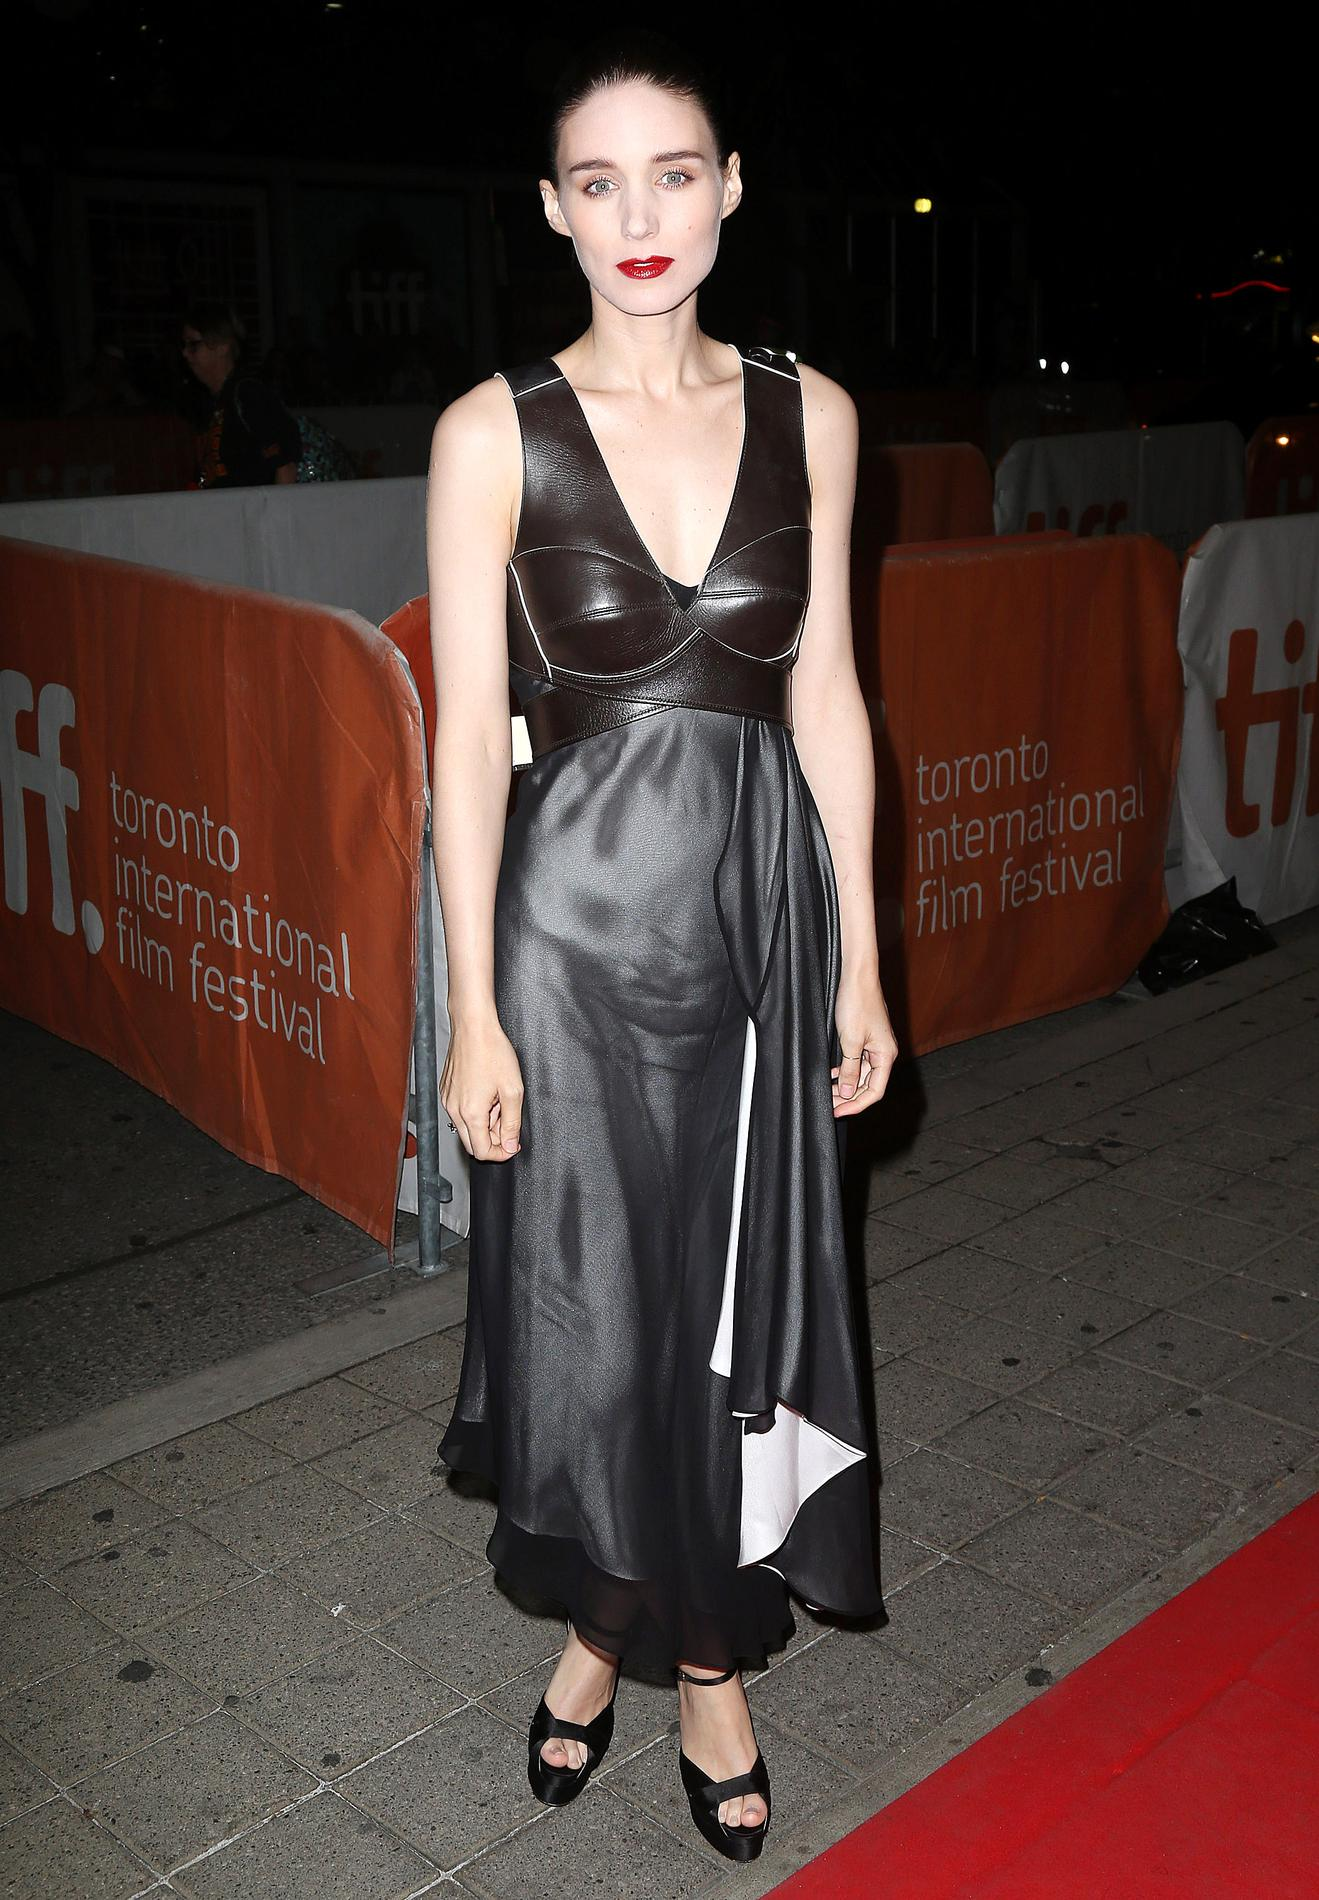 Rooney mara in the girl with the dragon tattoo 2012 - 4 9